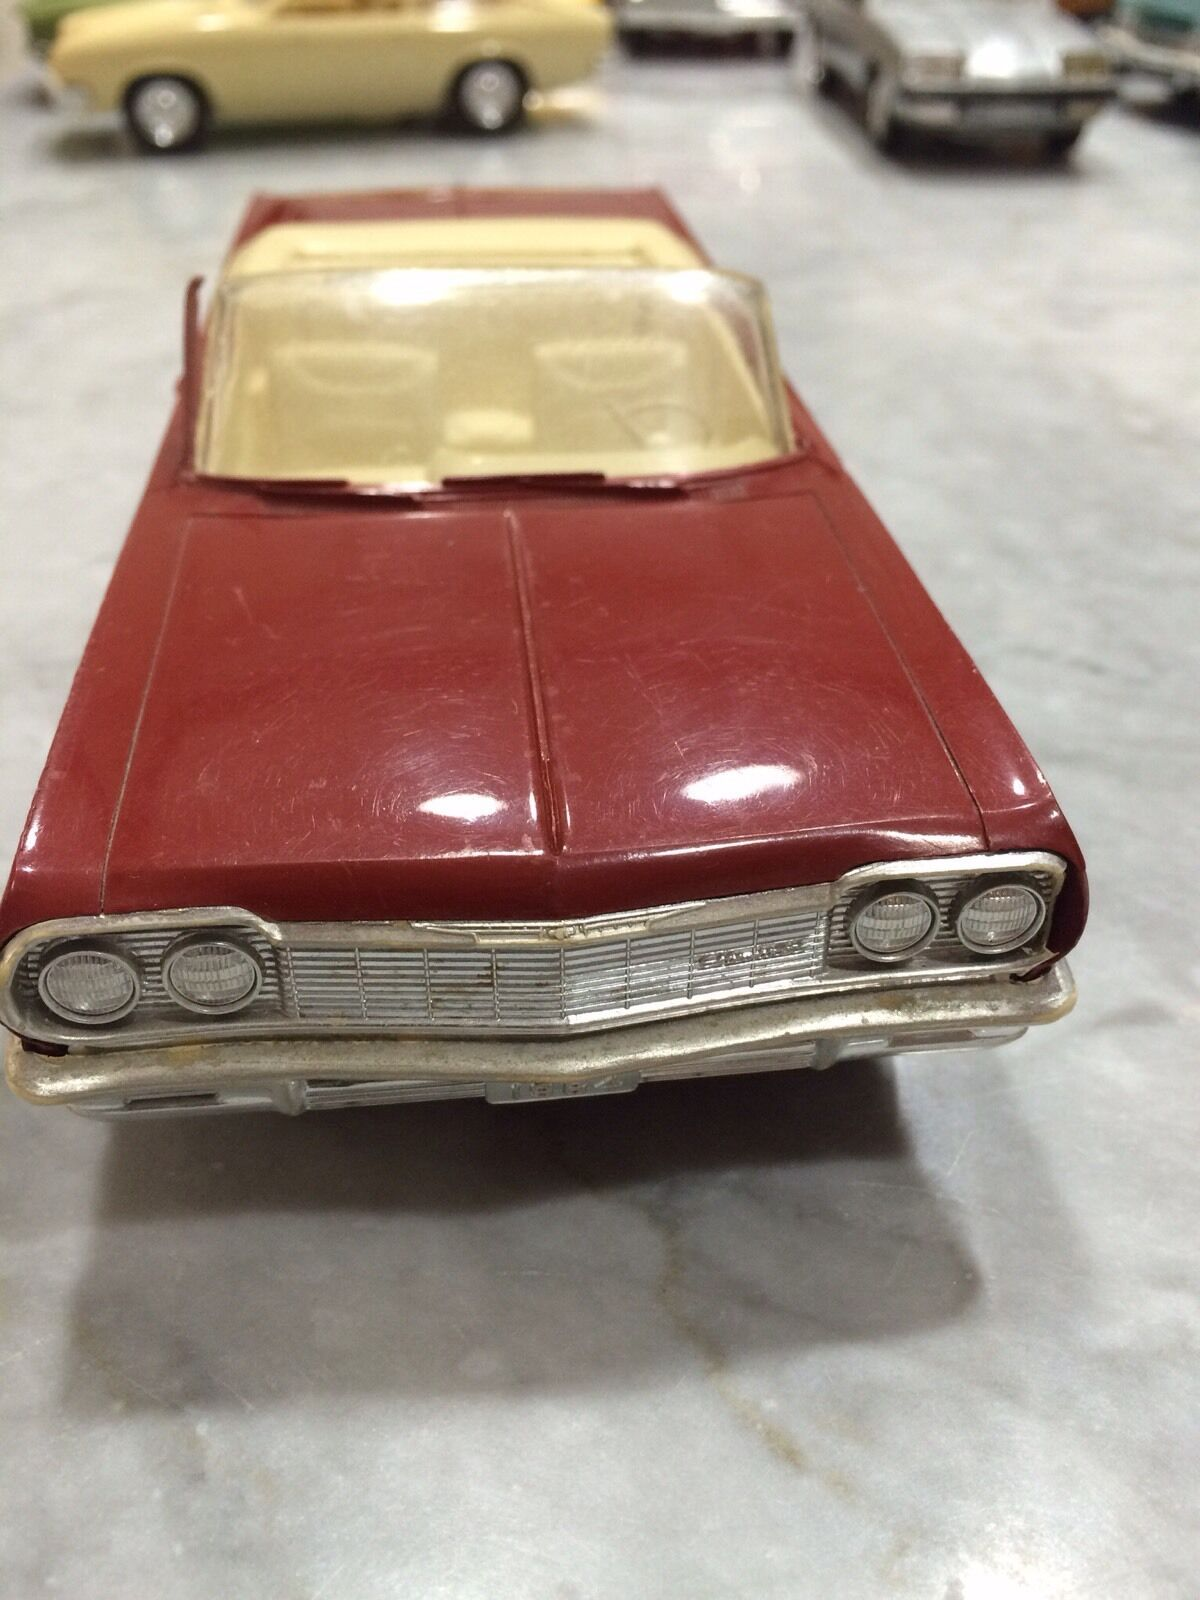 1964 Chevrolet Impala SS Promo Plastic Promotional Model Car